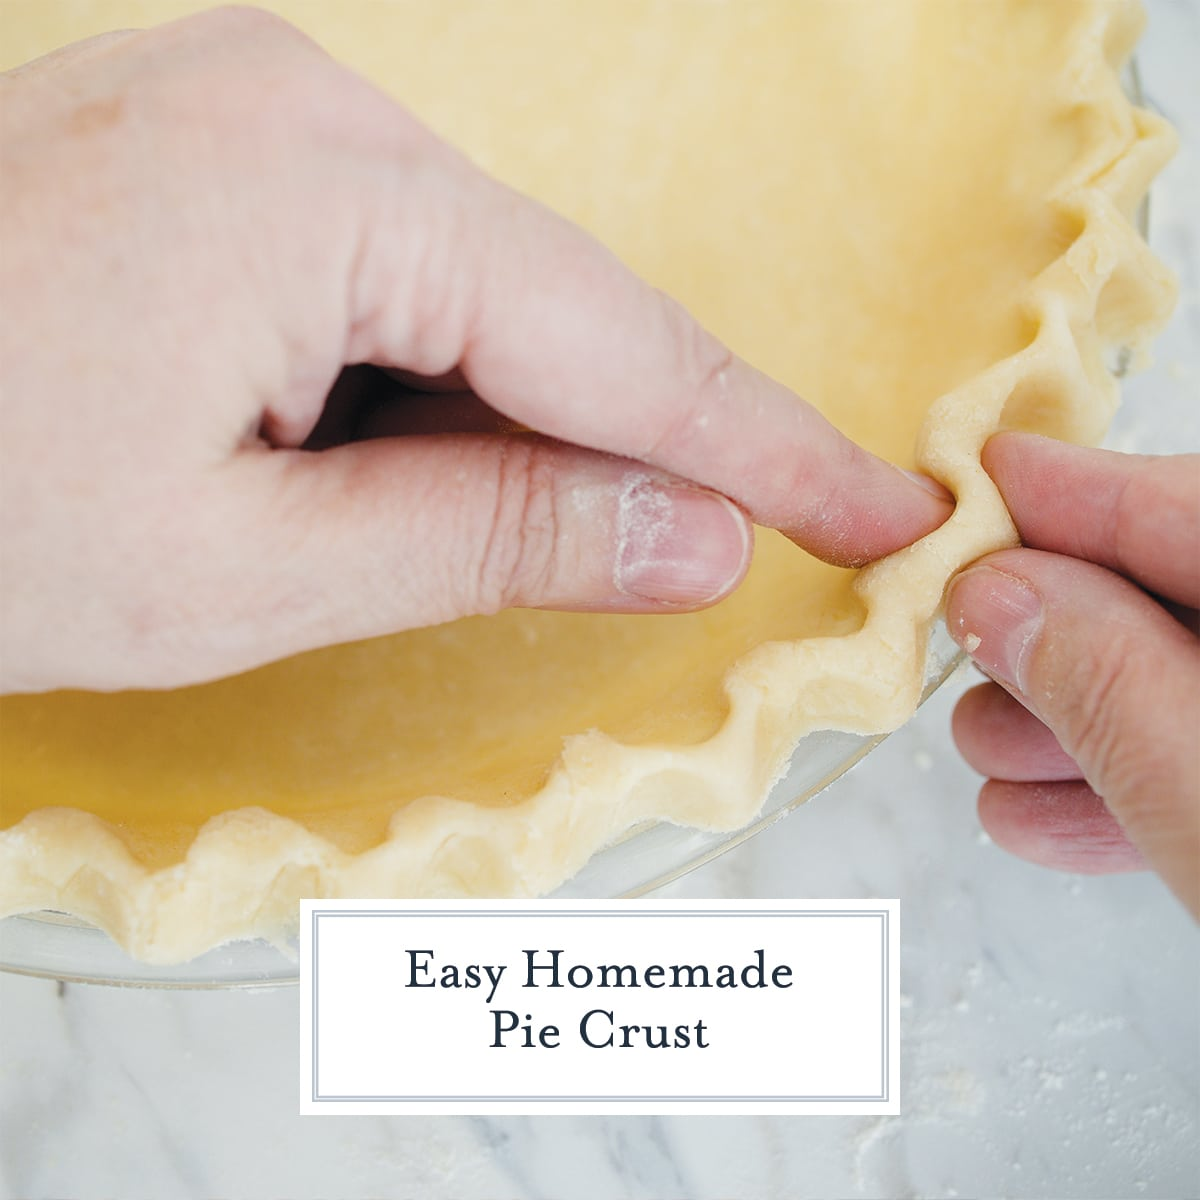 fingers pinching together a pie crust